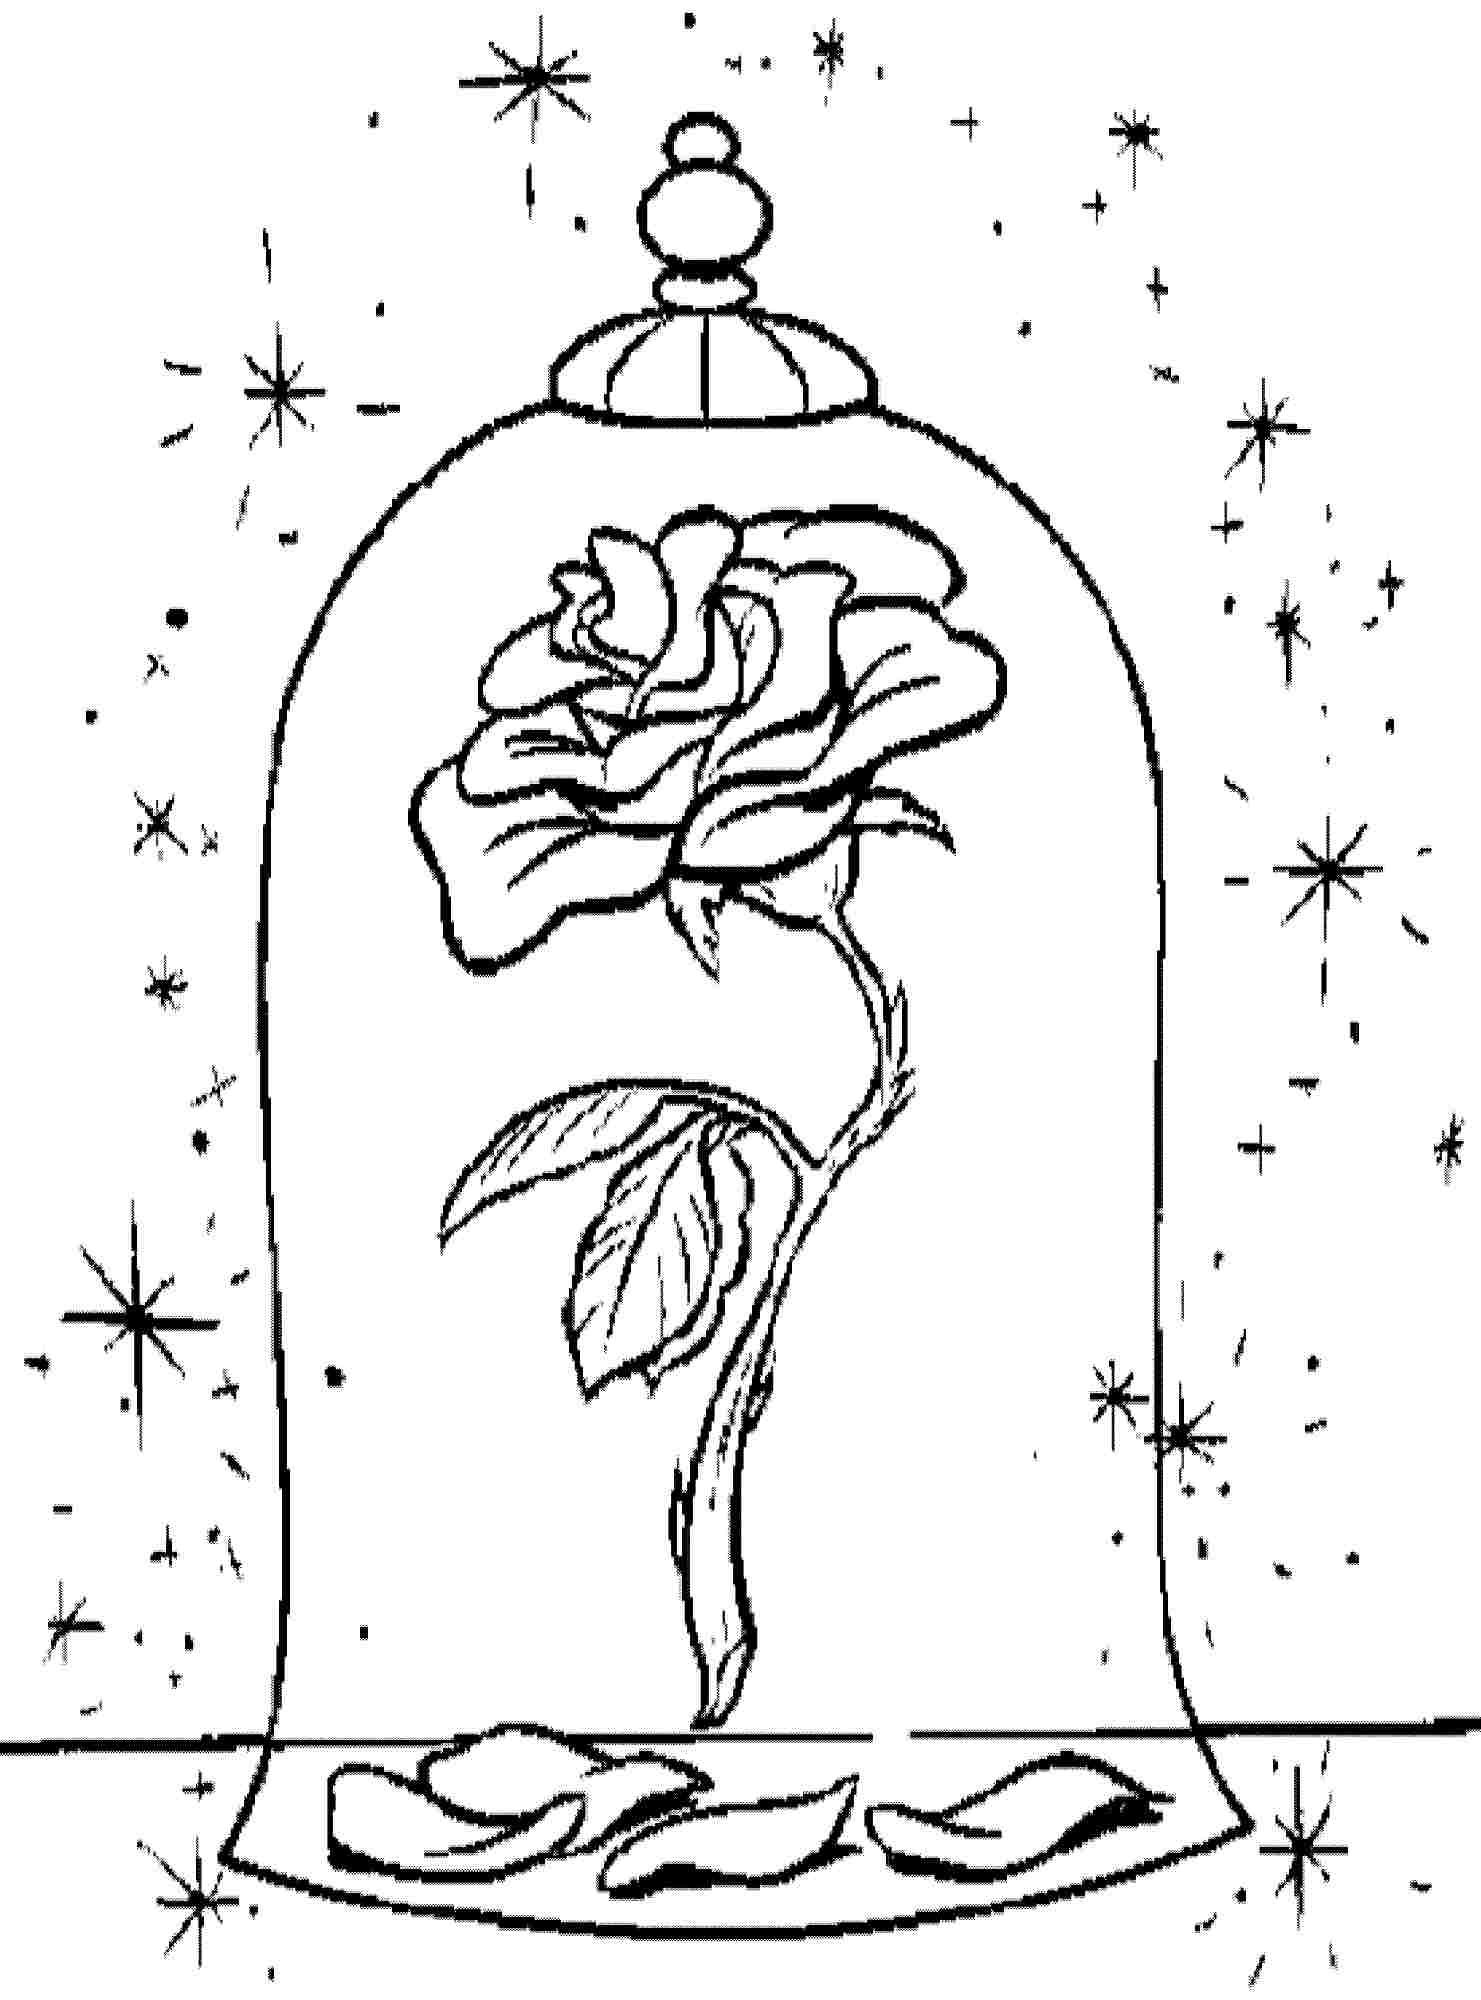 beauty and the beast printable coloring pages Beauty And The Beast Coloring Pages Rose | Coloring Pages  beauty and the beast printable coloring pages